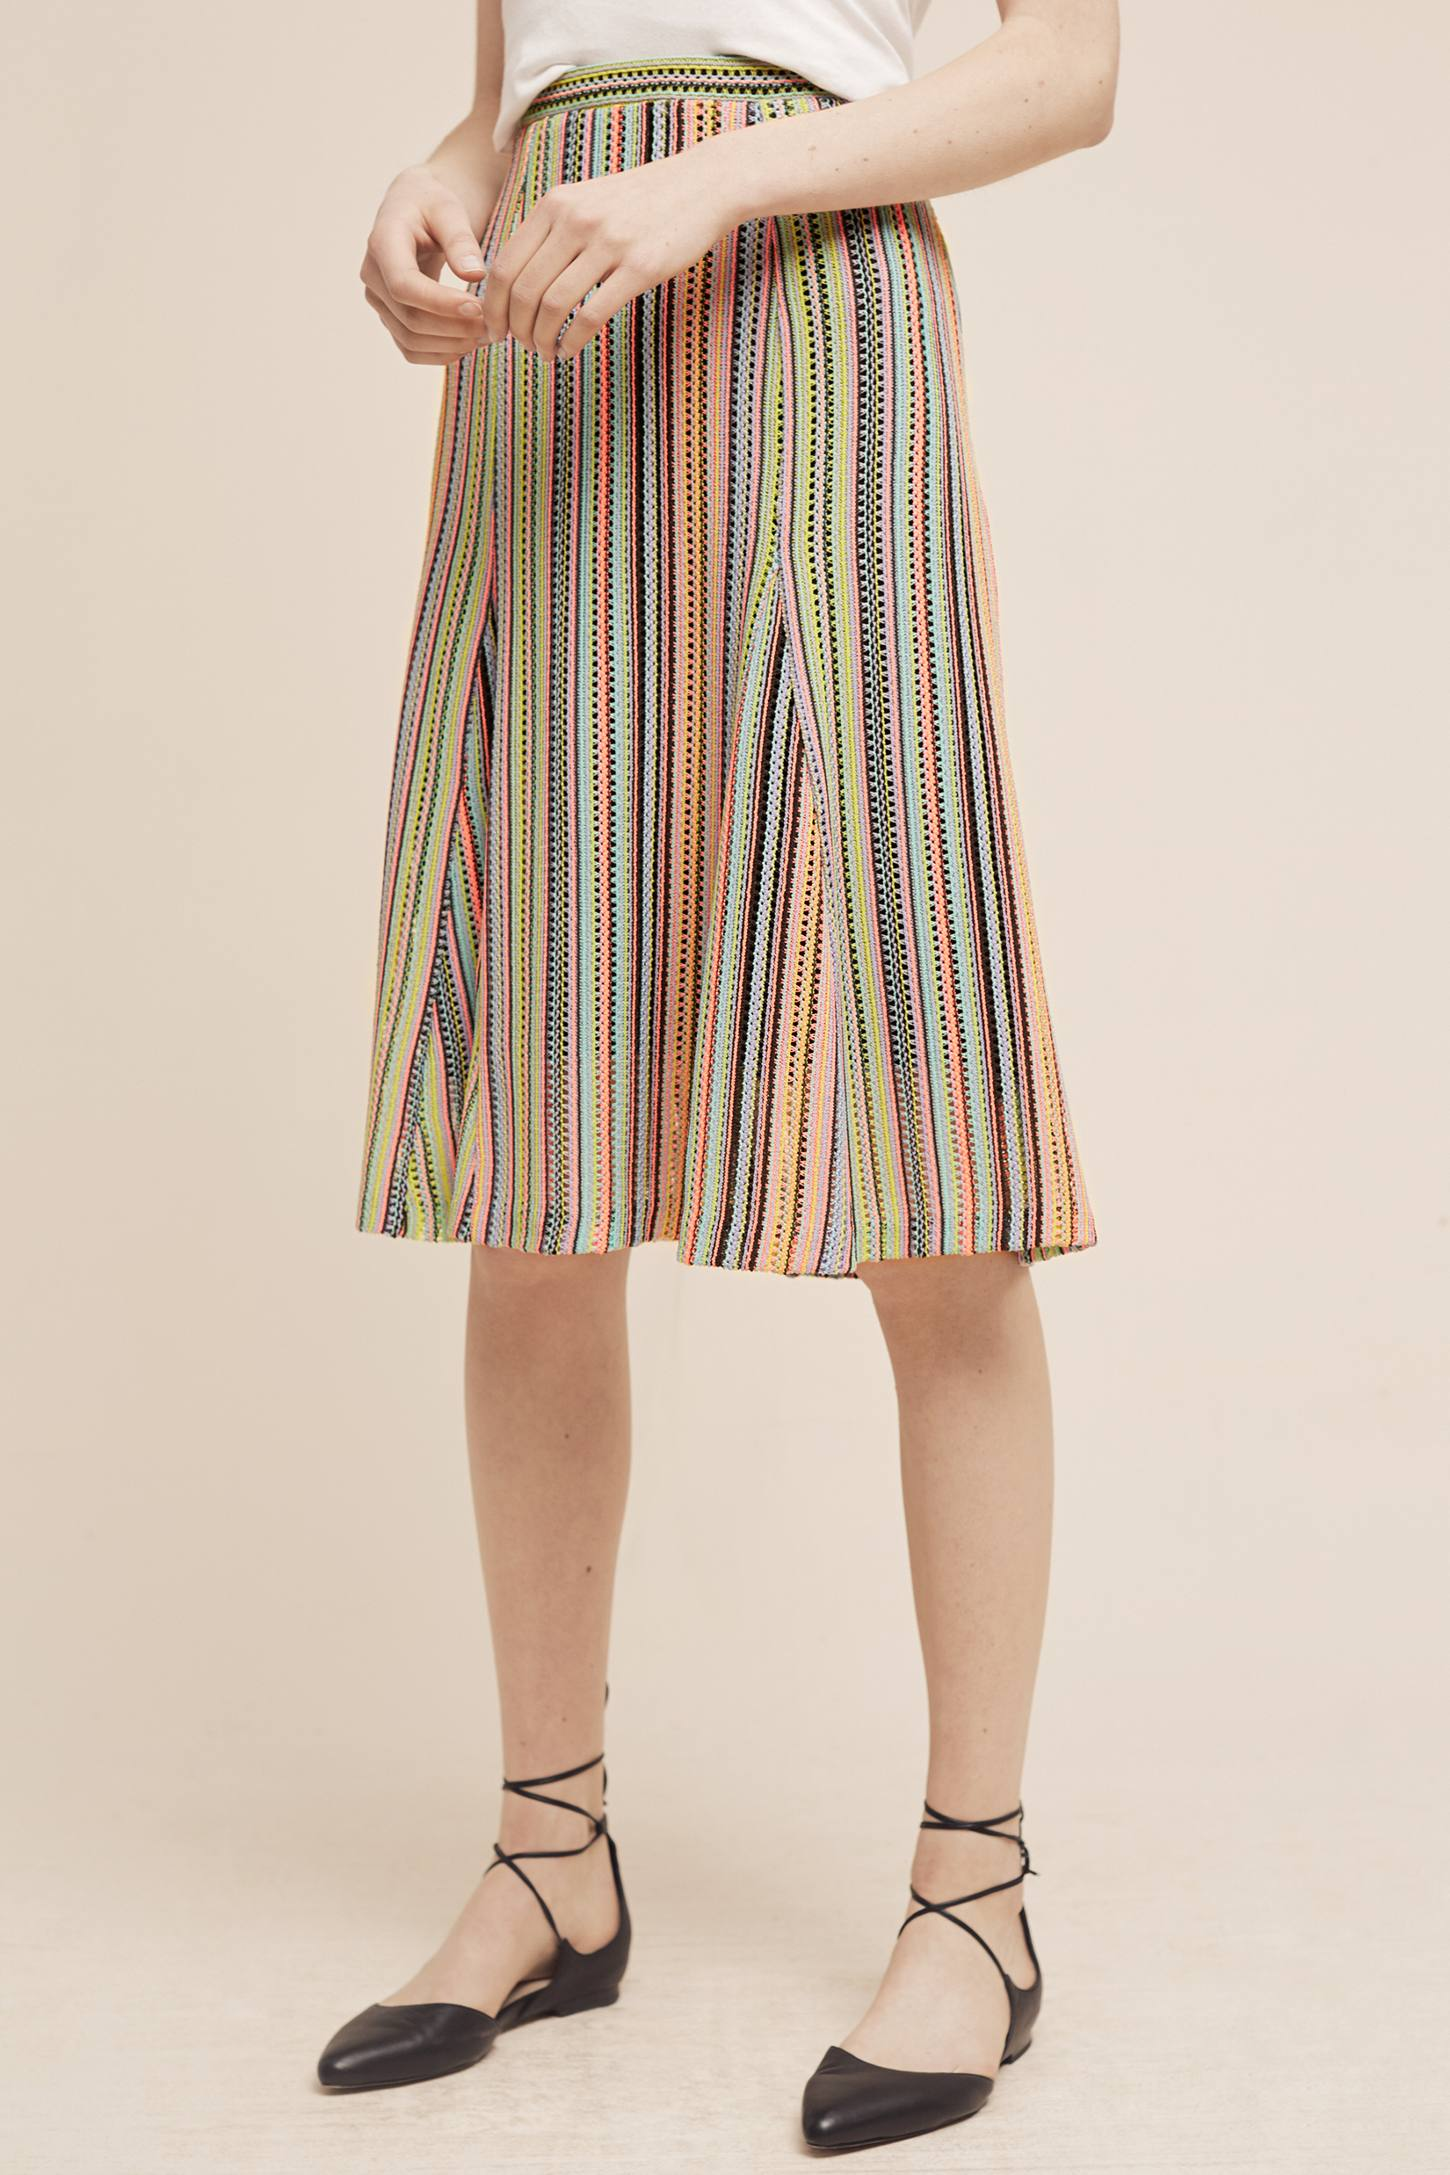 Slide View: 2: Spectral Stripe Skirt